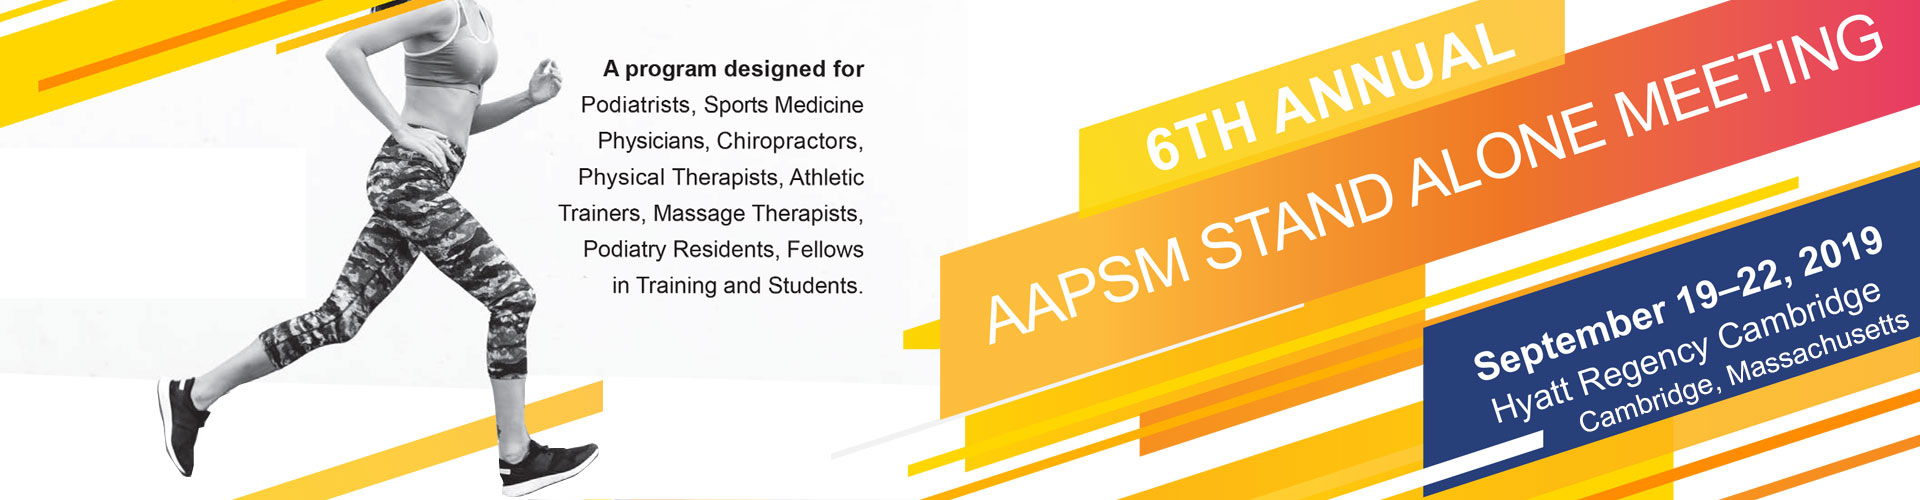 2019 AAPSM Stand Alone Meeting - September 18-22, 2019 in Cambridge, Massachusetts